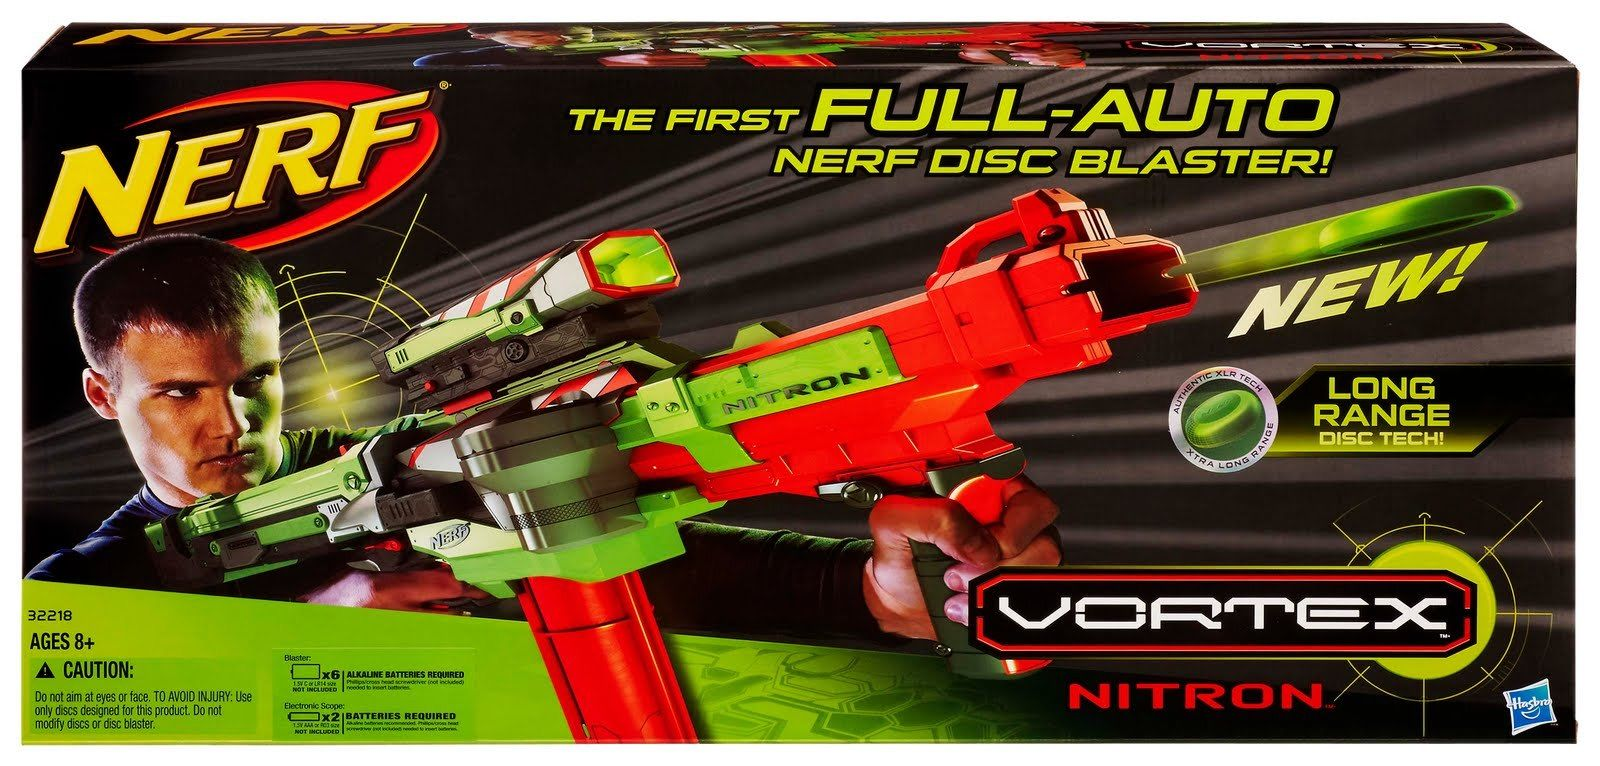 Overwhelm your enemies with your Nerf gun - Check out our Nerf .